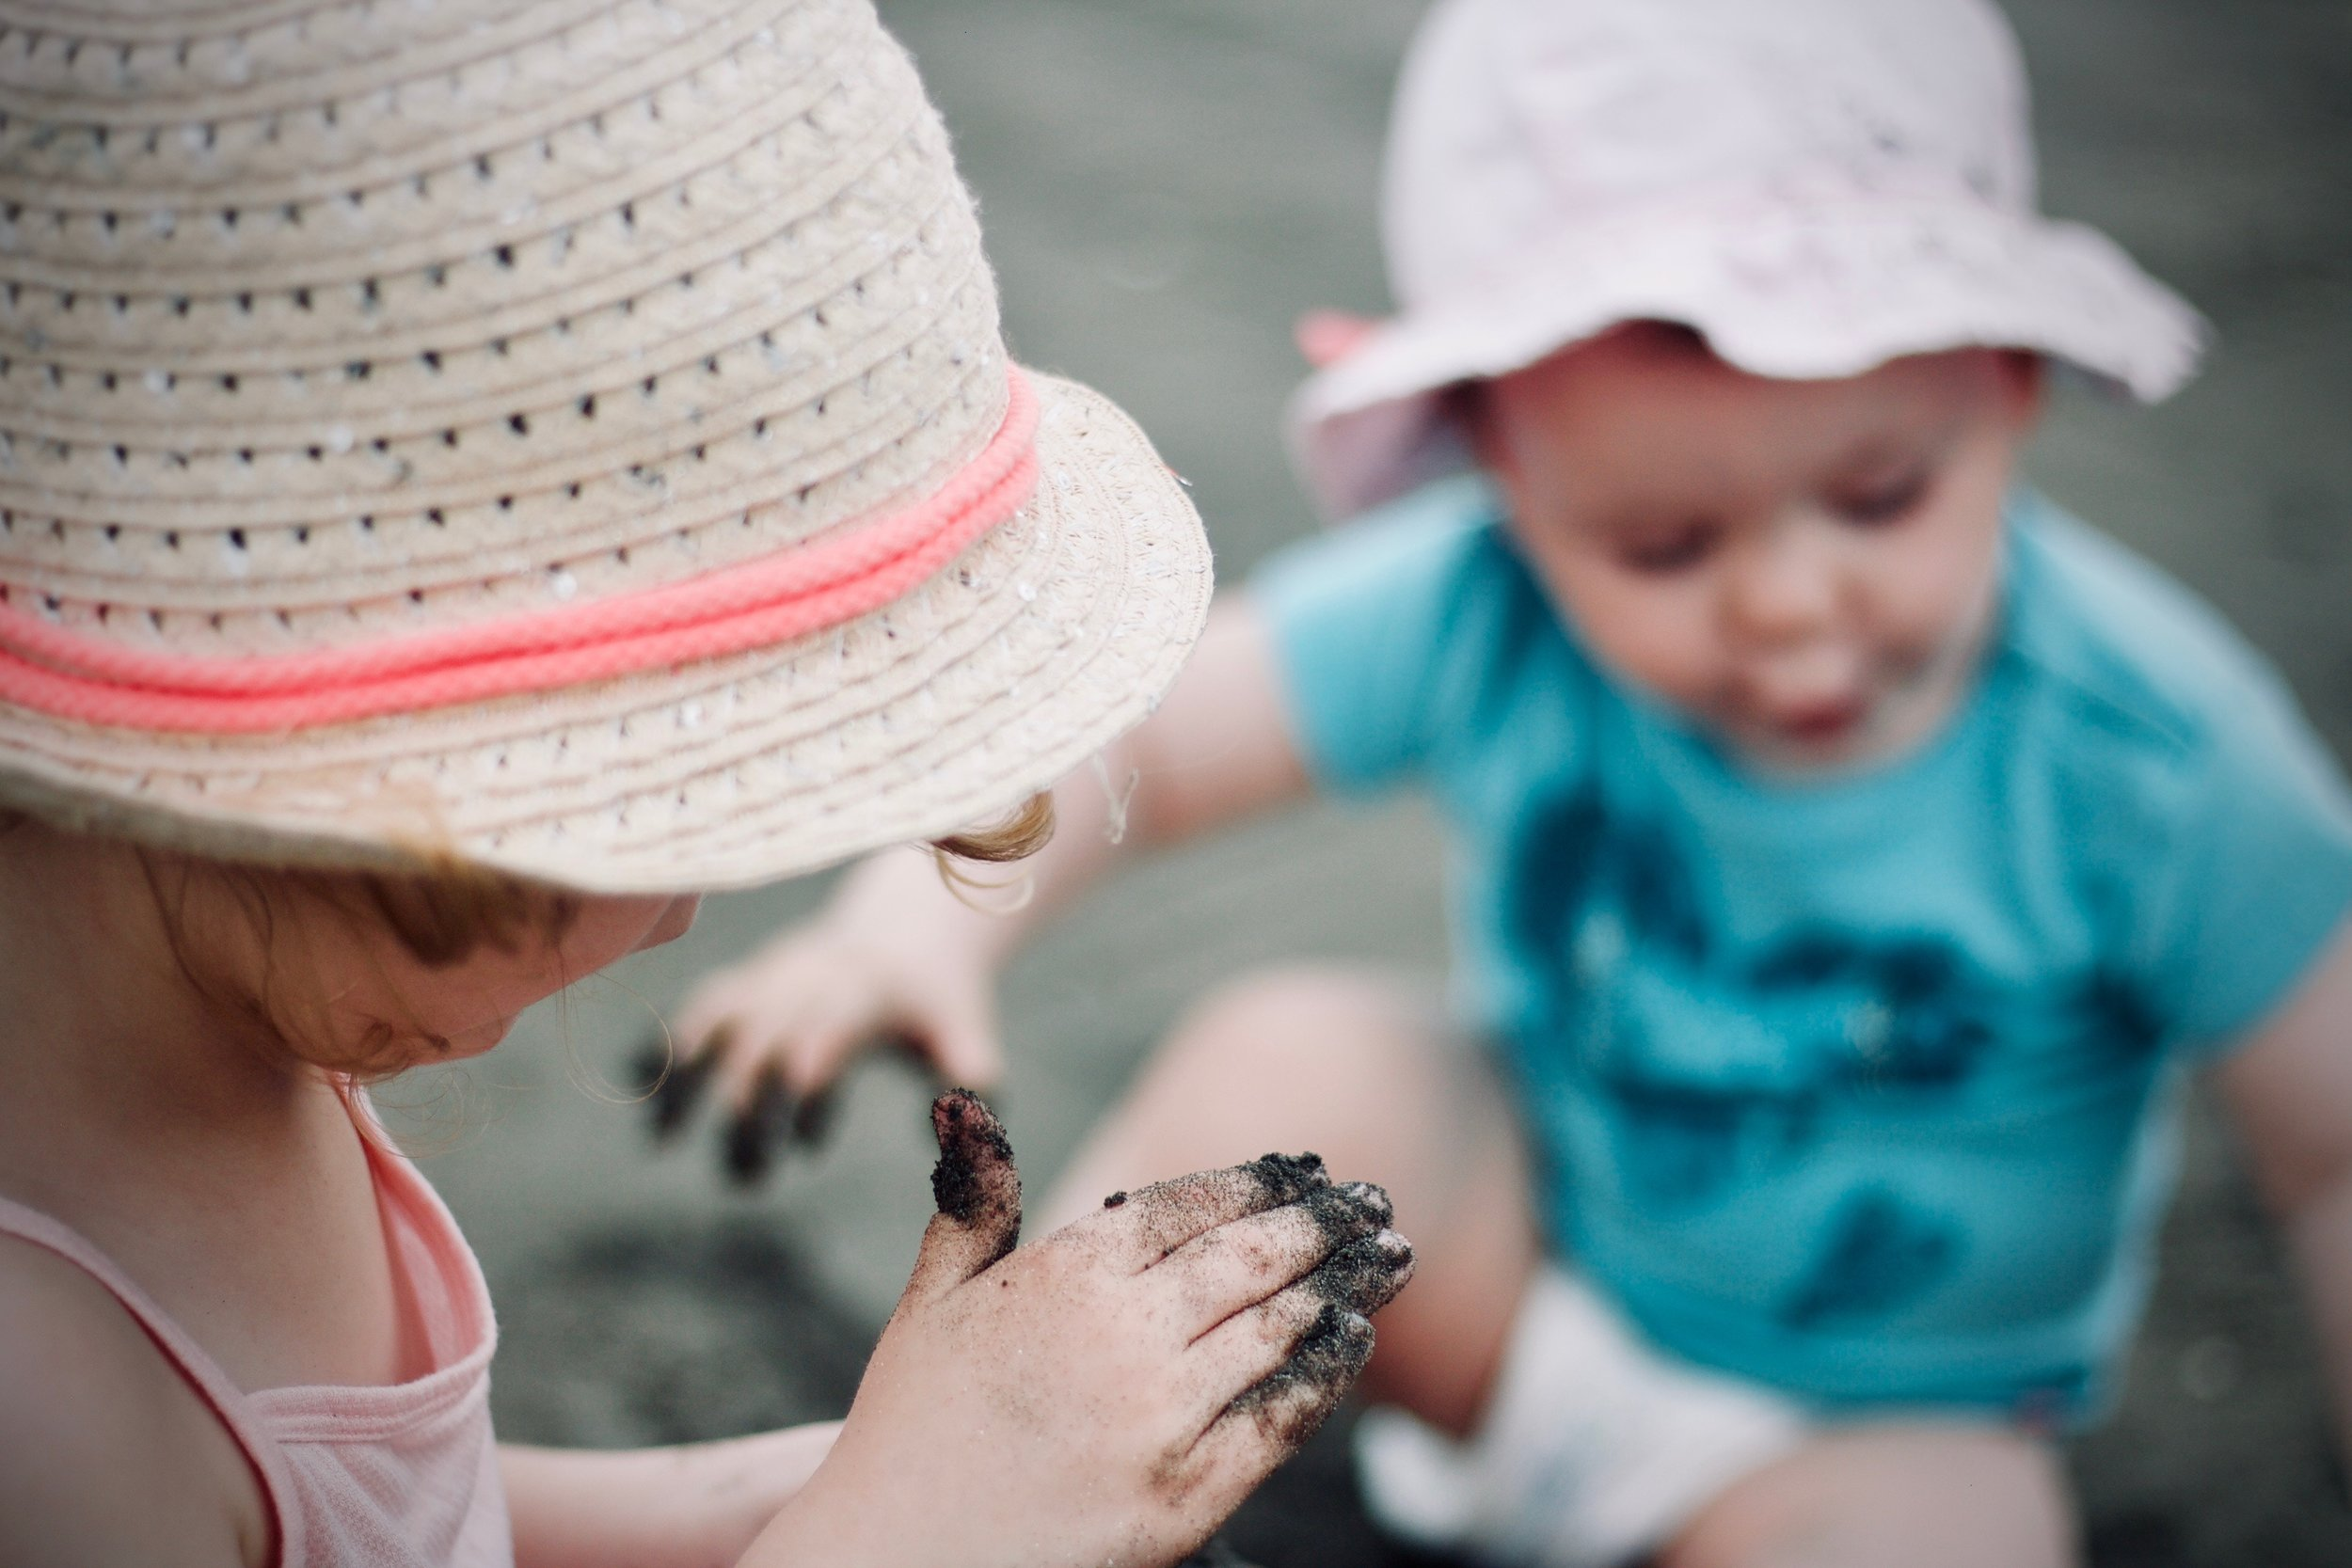 Parent and Toddler Group (Little Gems) - If you'd like to come along then please pop-in and see us - we're here on:Tuesdays 10:00am - 11:30amPhoto by Jelleke Vanooteghem on Unsplash